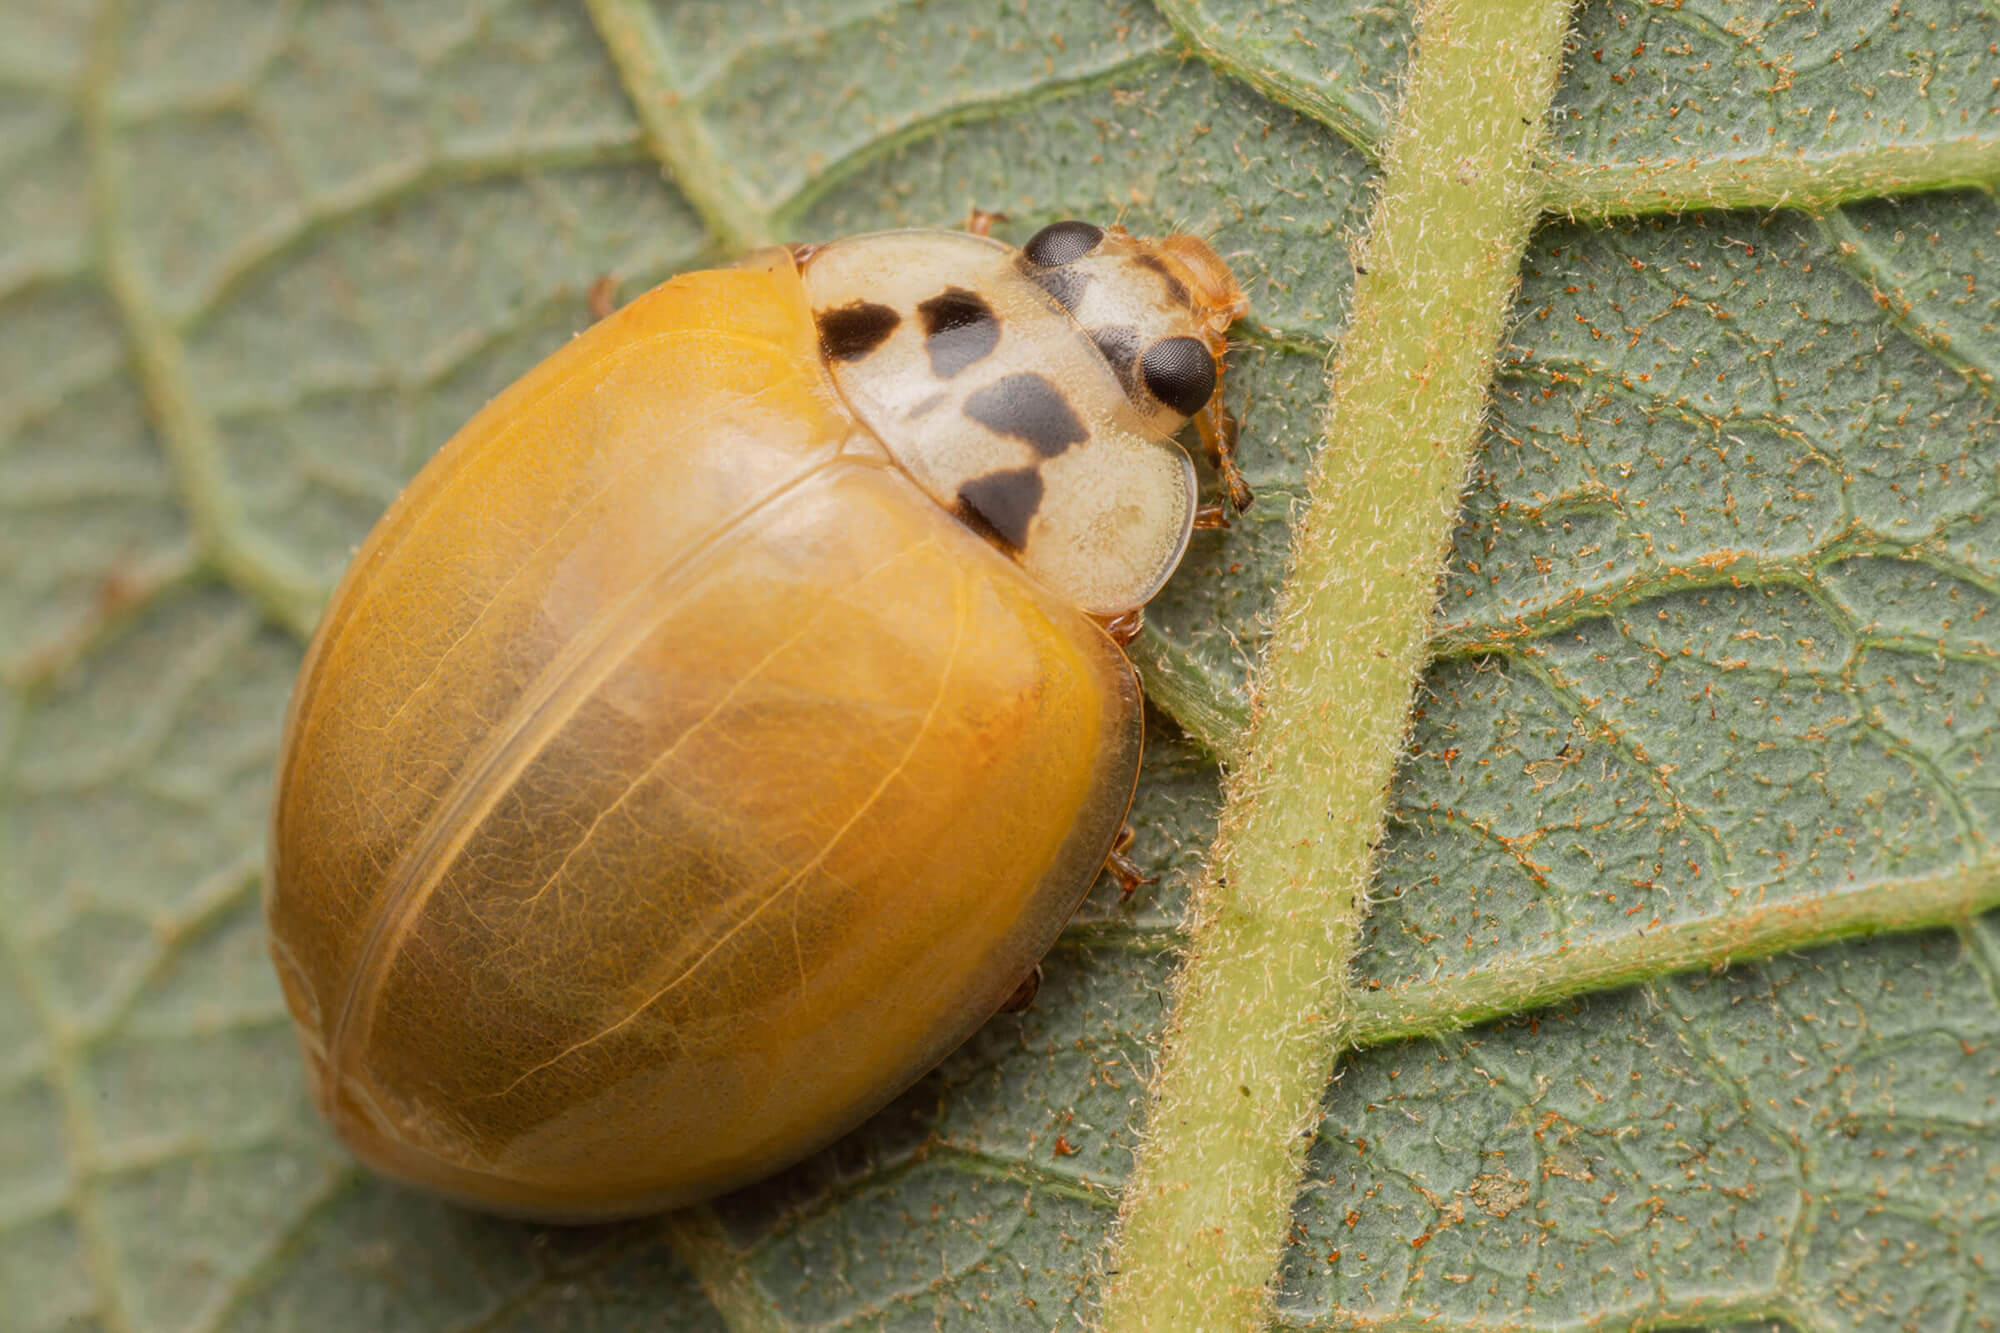 A yellow bug sitting on a leaf